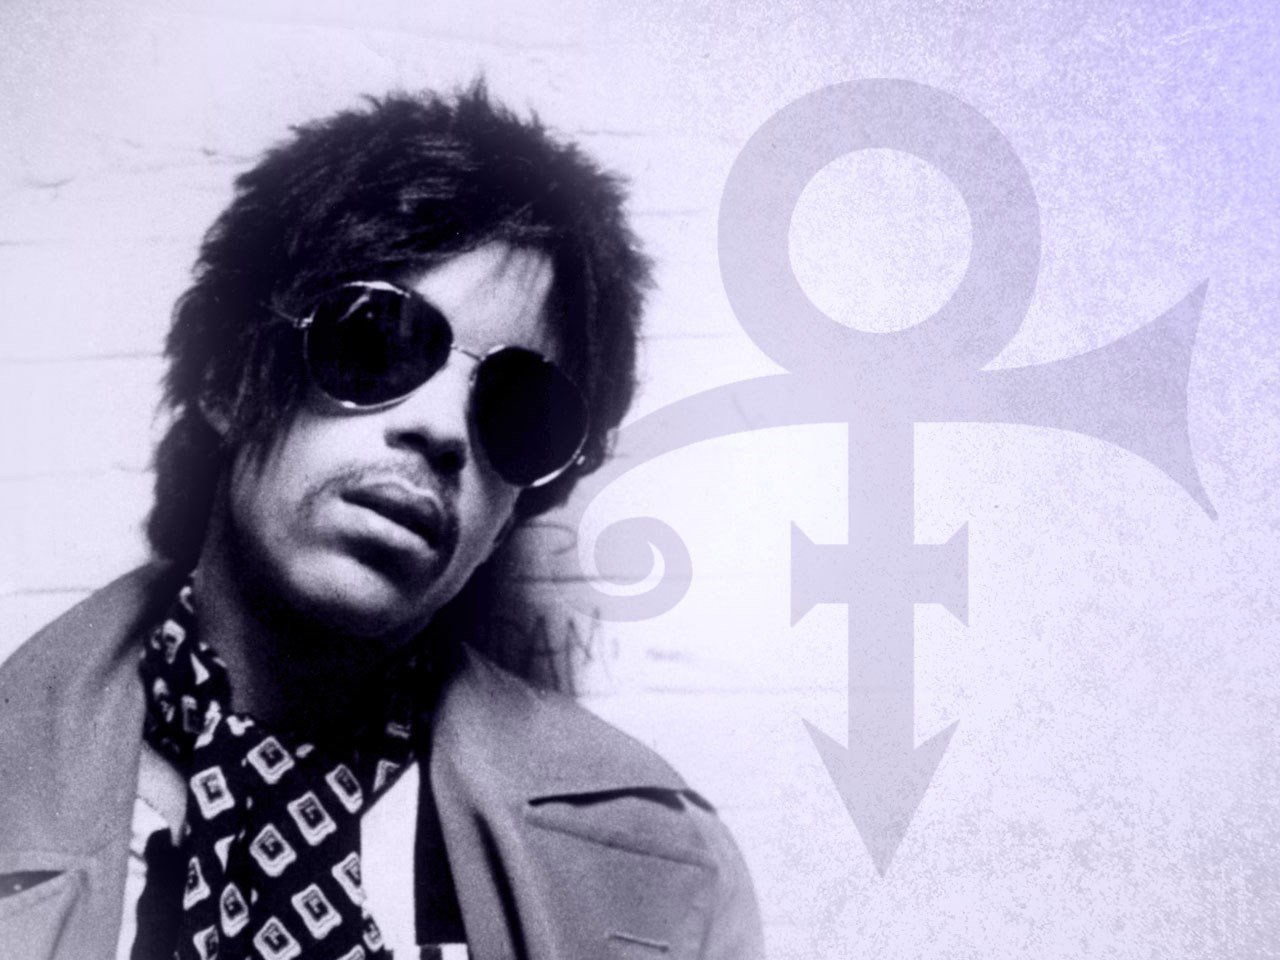 Prince's fentanyl overdose might be connected to deadly mislabeled pills trend